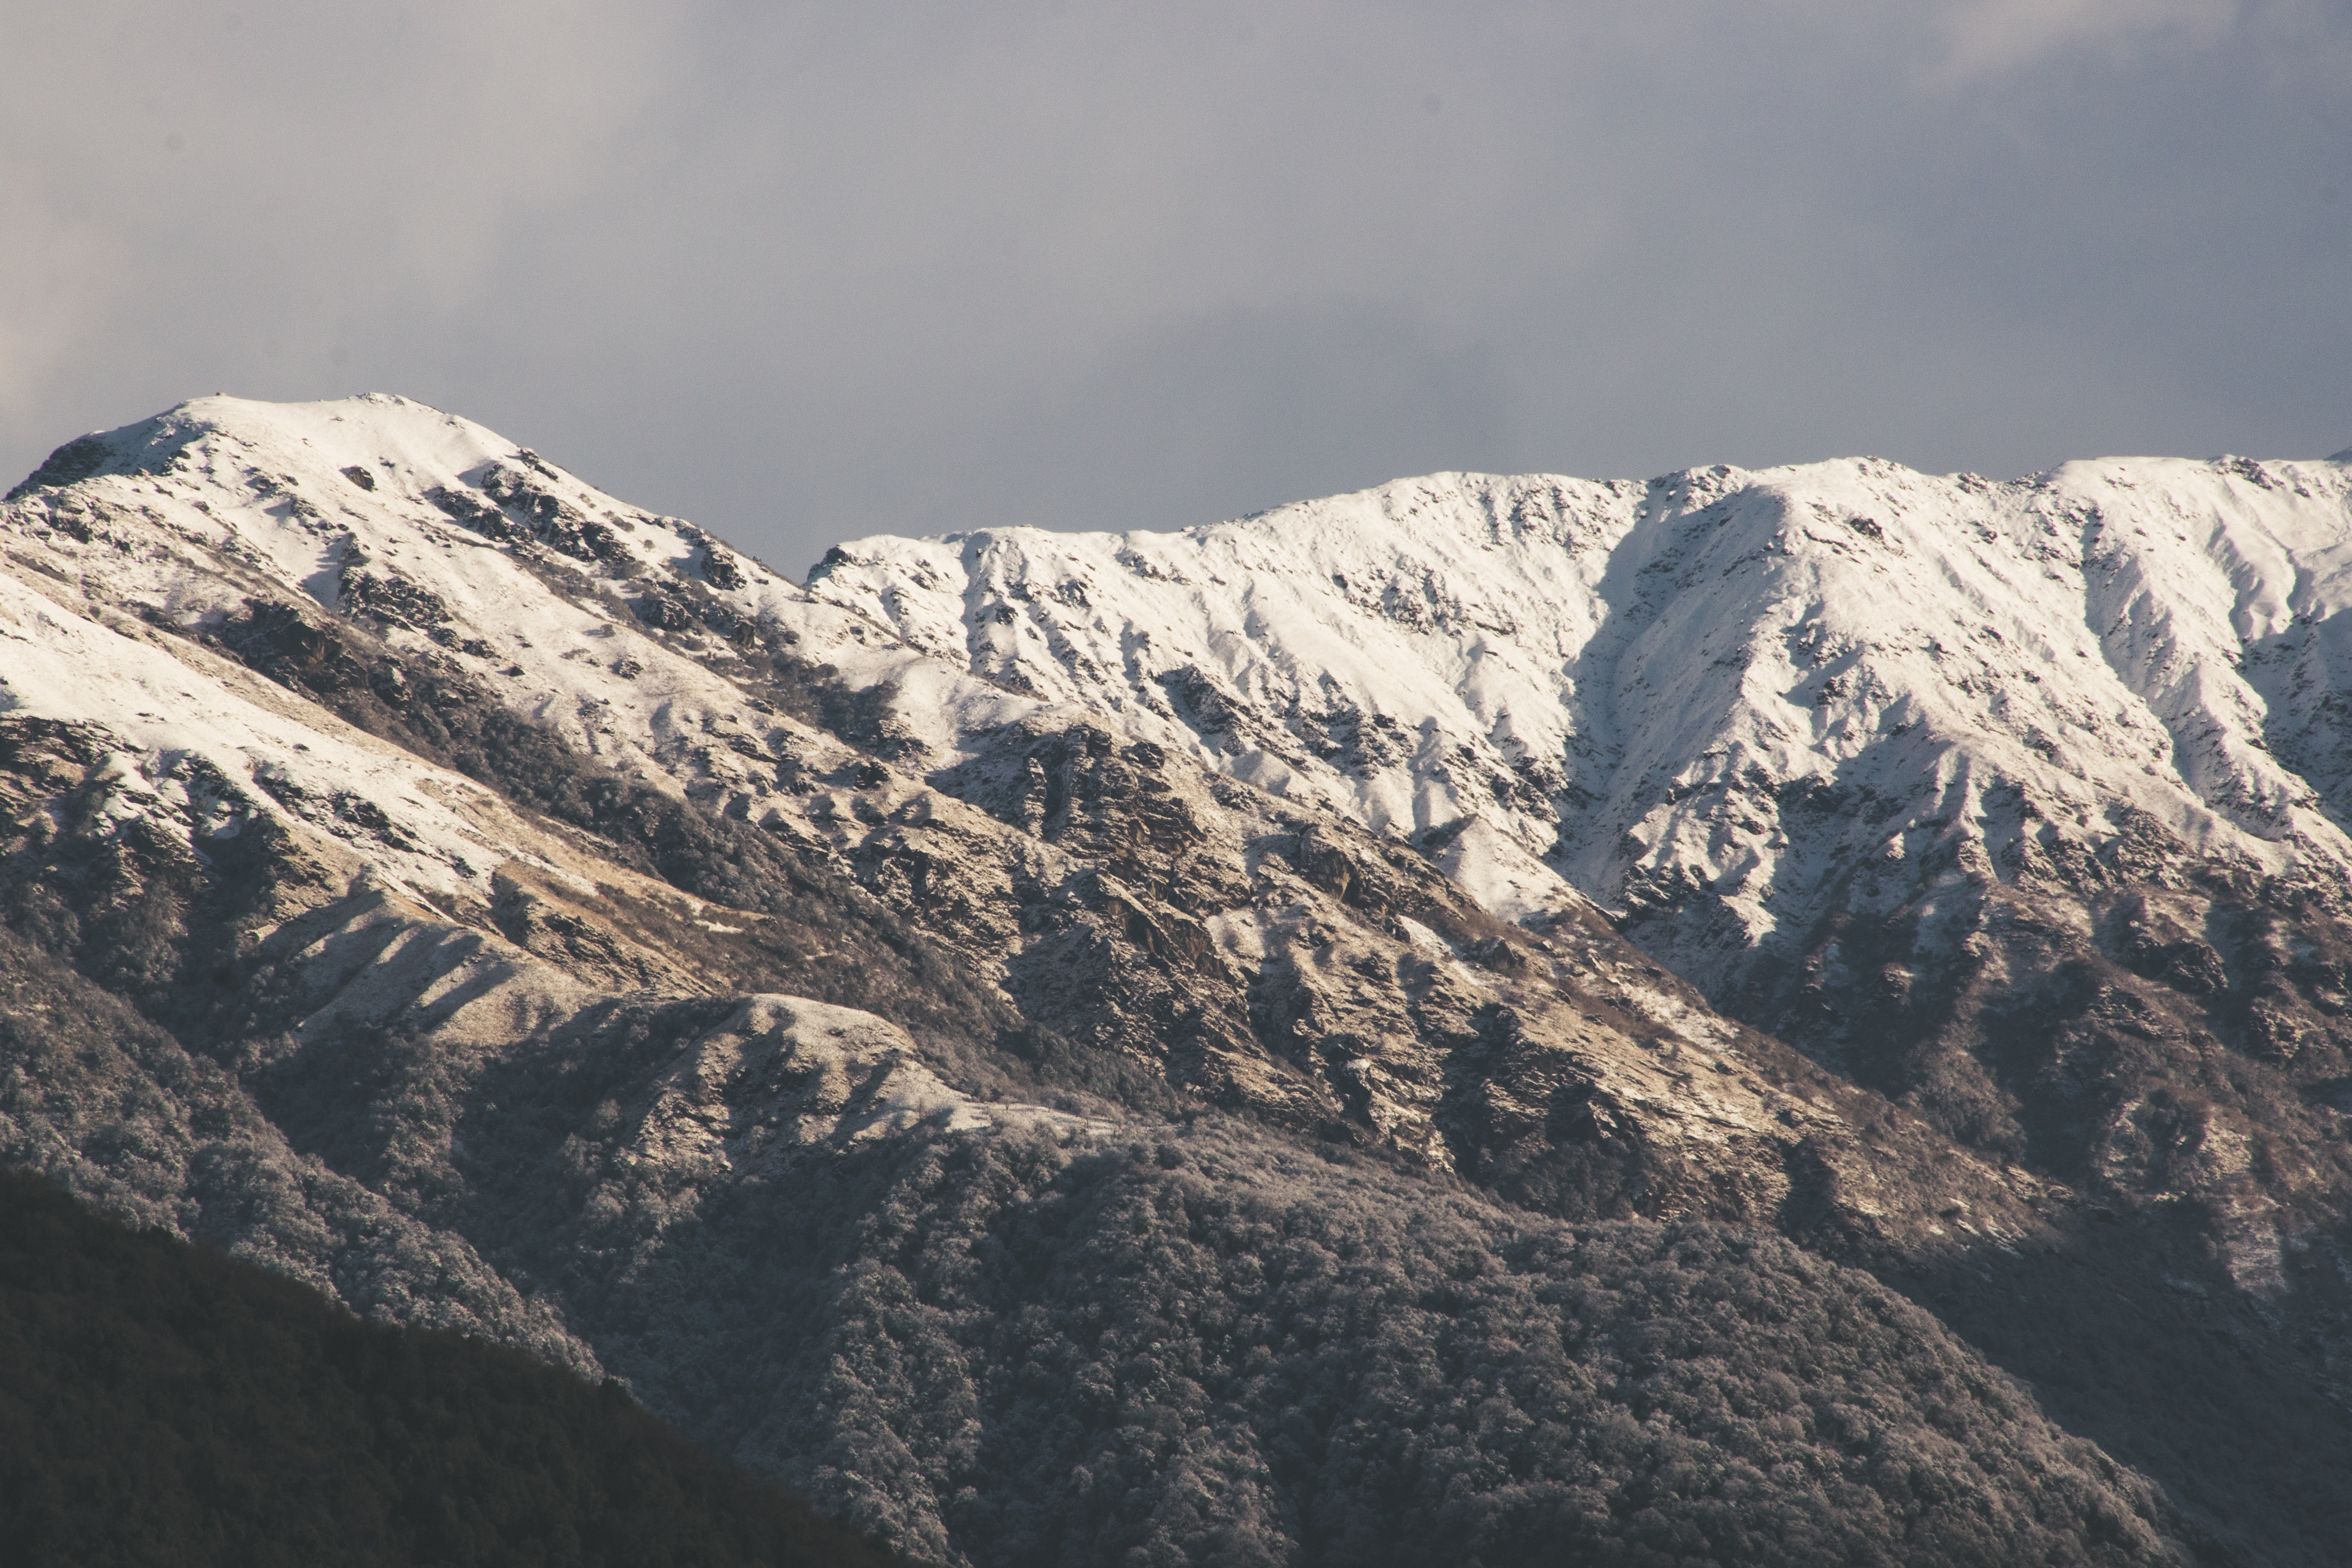 Landscape Photograph of Snow-capped Mountains, Nature, Winter, Trees, Summit, HQ Photo